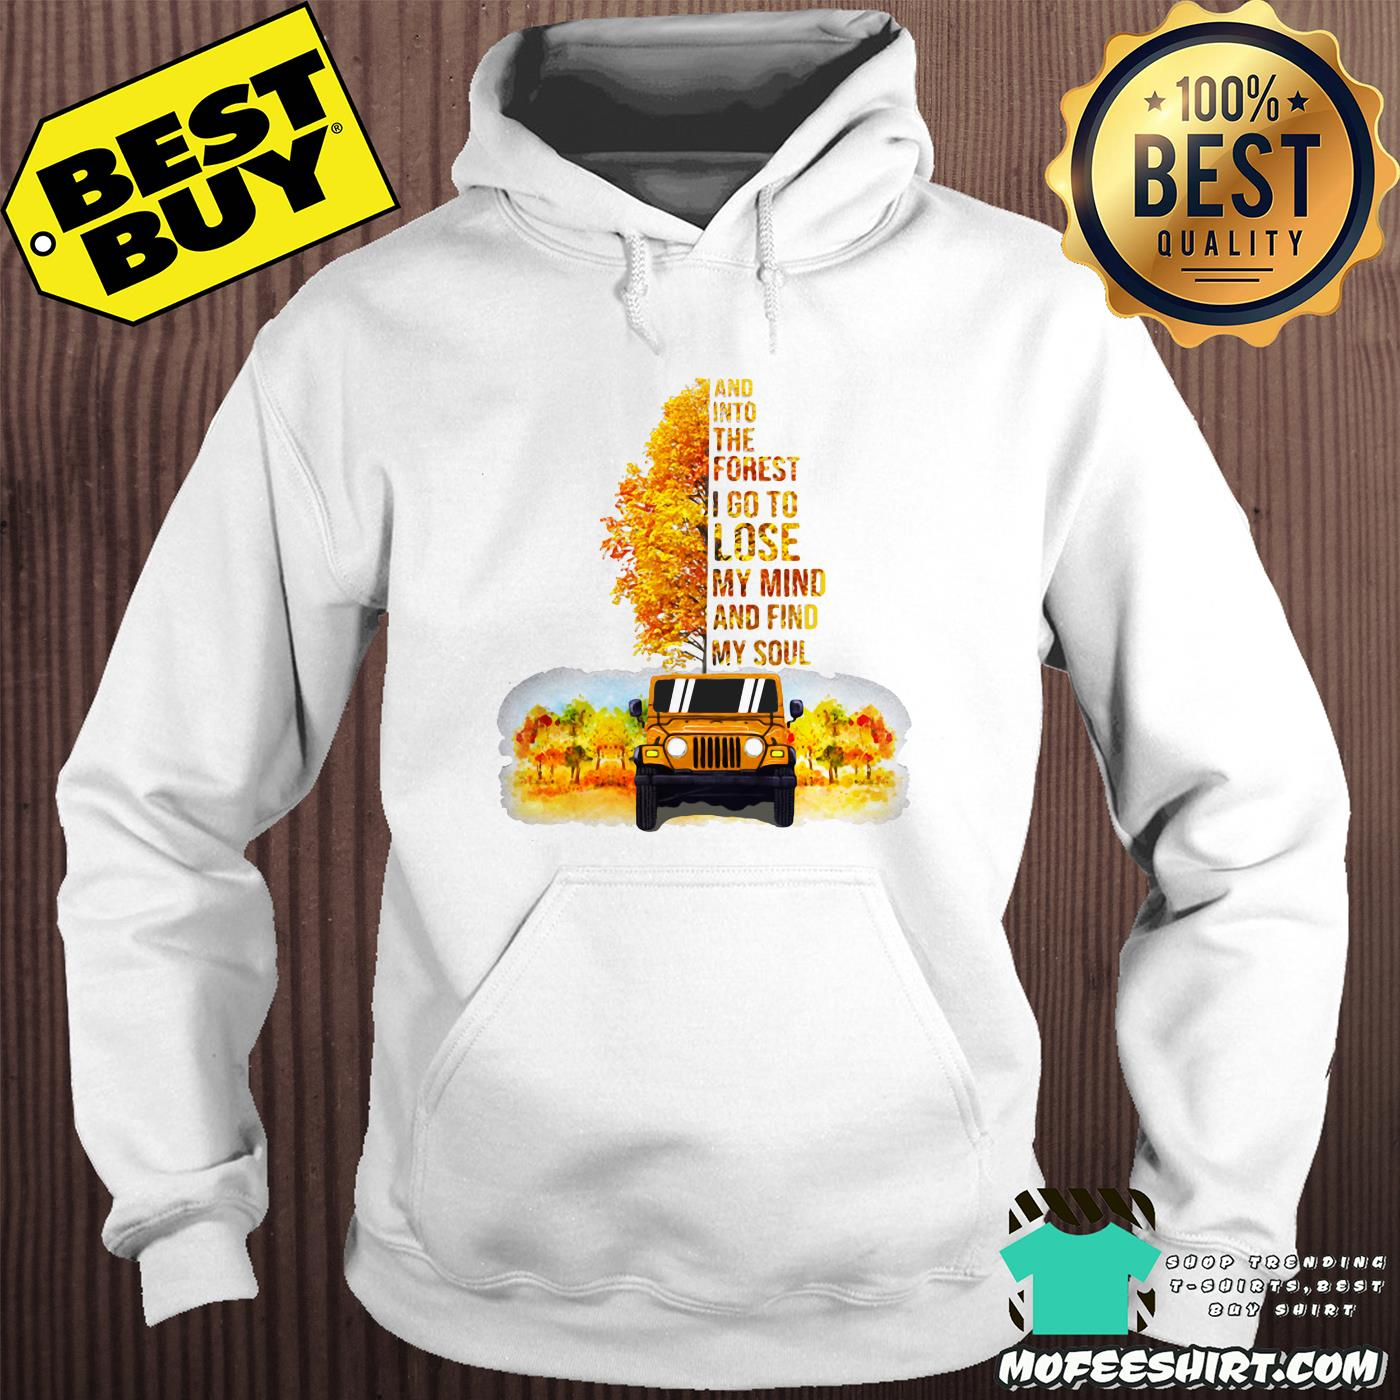 jeep tree and into the forest i go to lose my mind and find my soul autumn hoodie - Jeep tree And into the forest I go to lose my mind and find my soul Autumn shirt